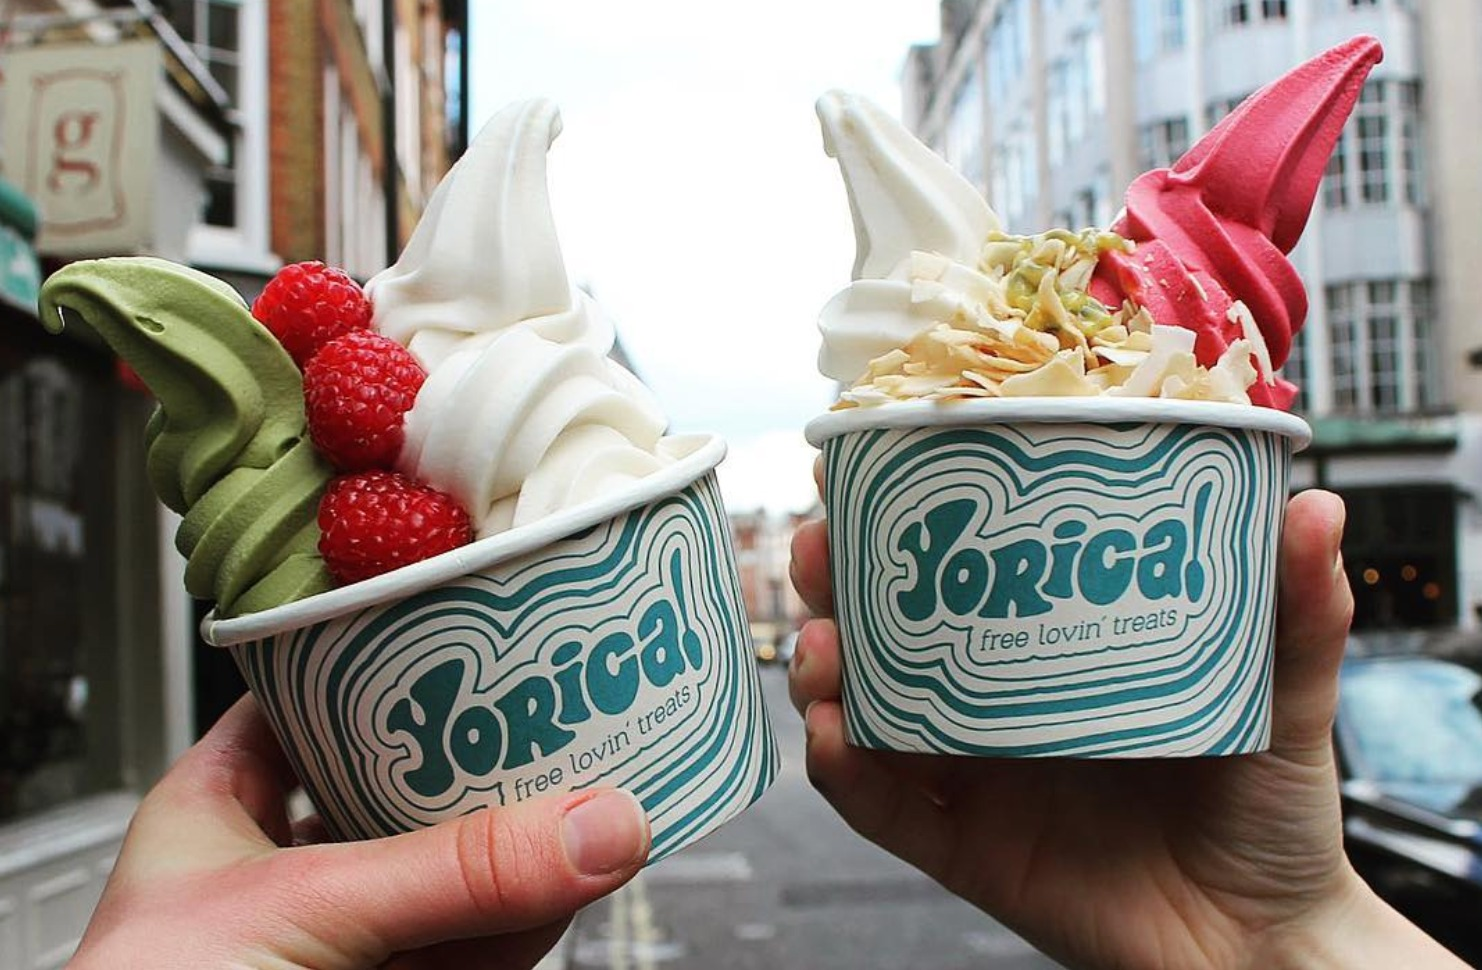 Yorica vegan ice-cream in Soho